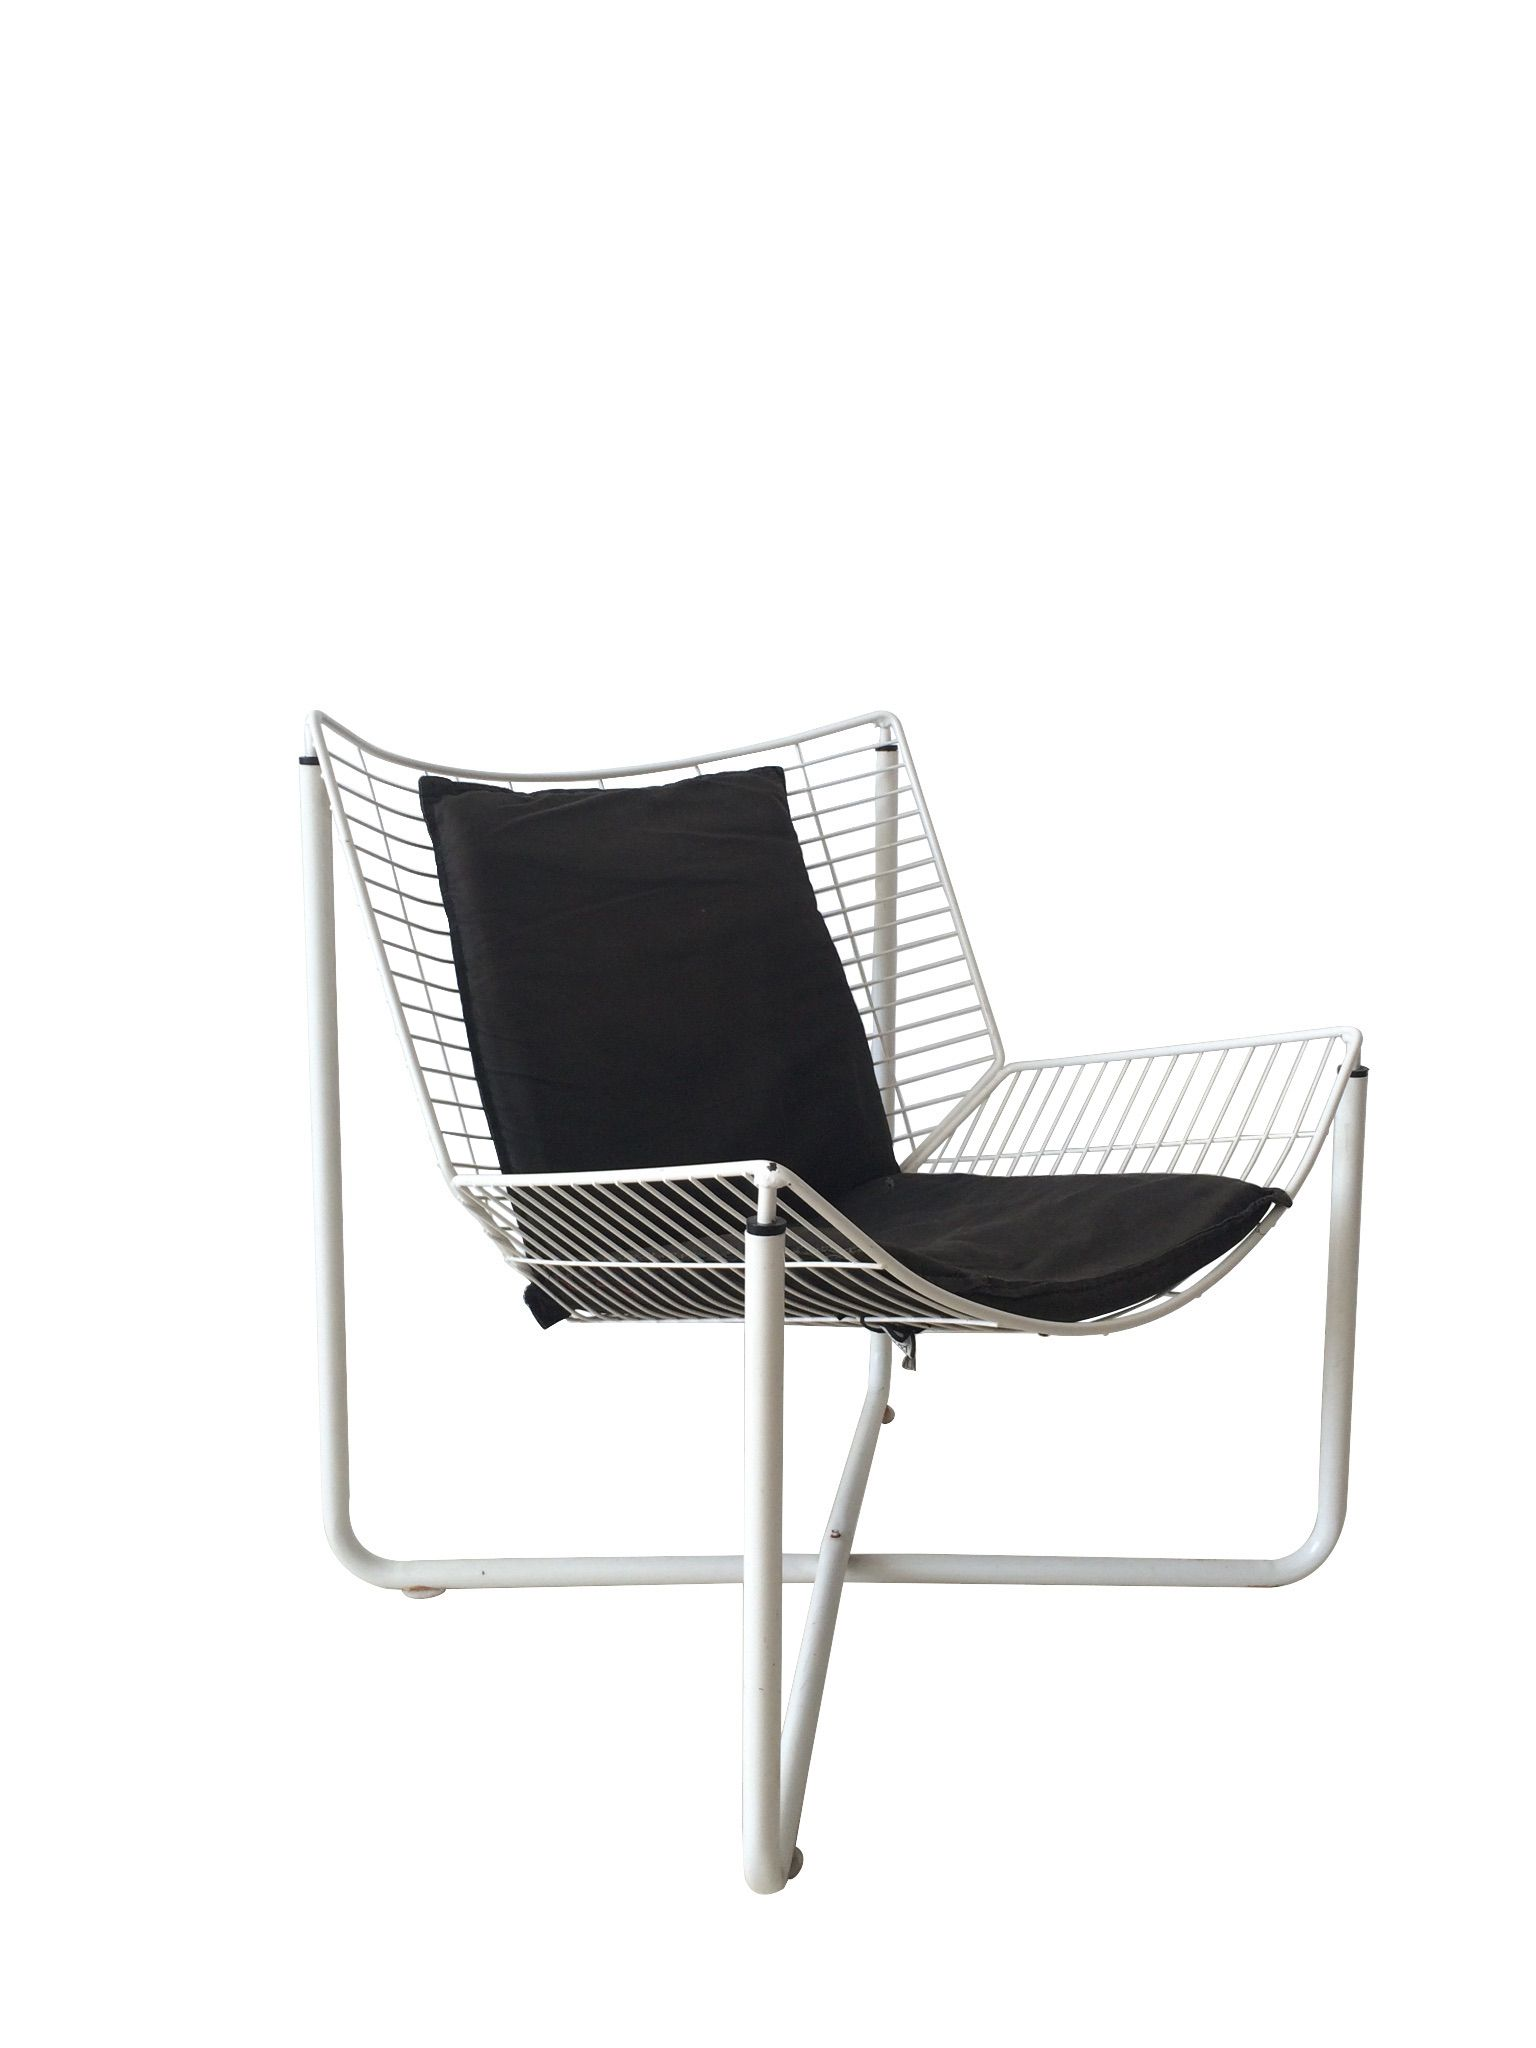 Jarpen Chair By Niels Gammelgaard For Ikea 1983 Wire Chair